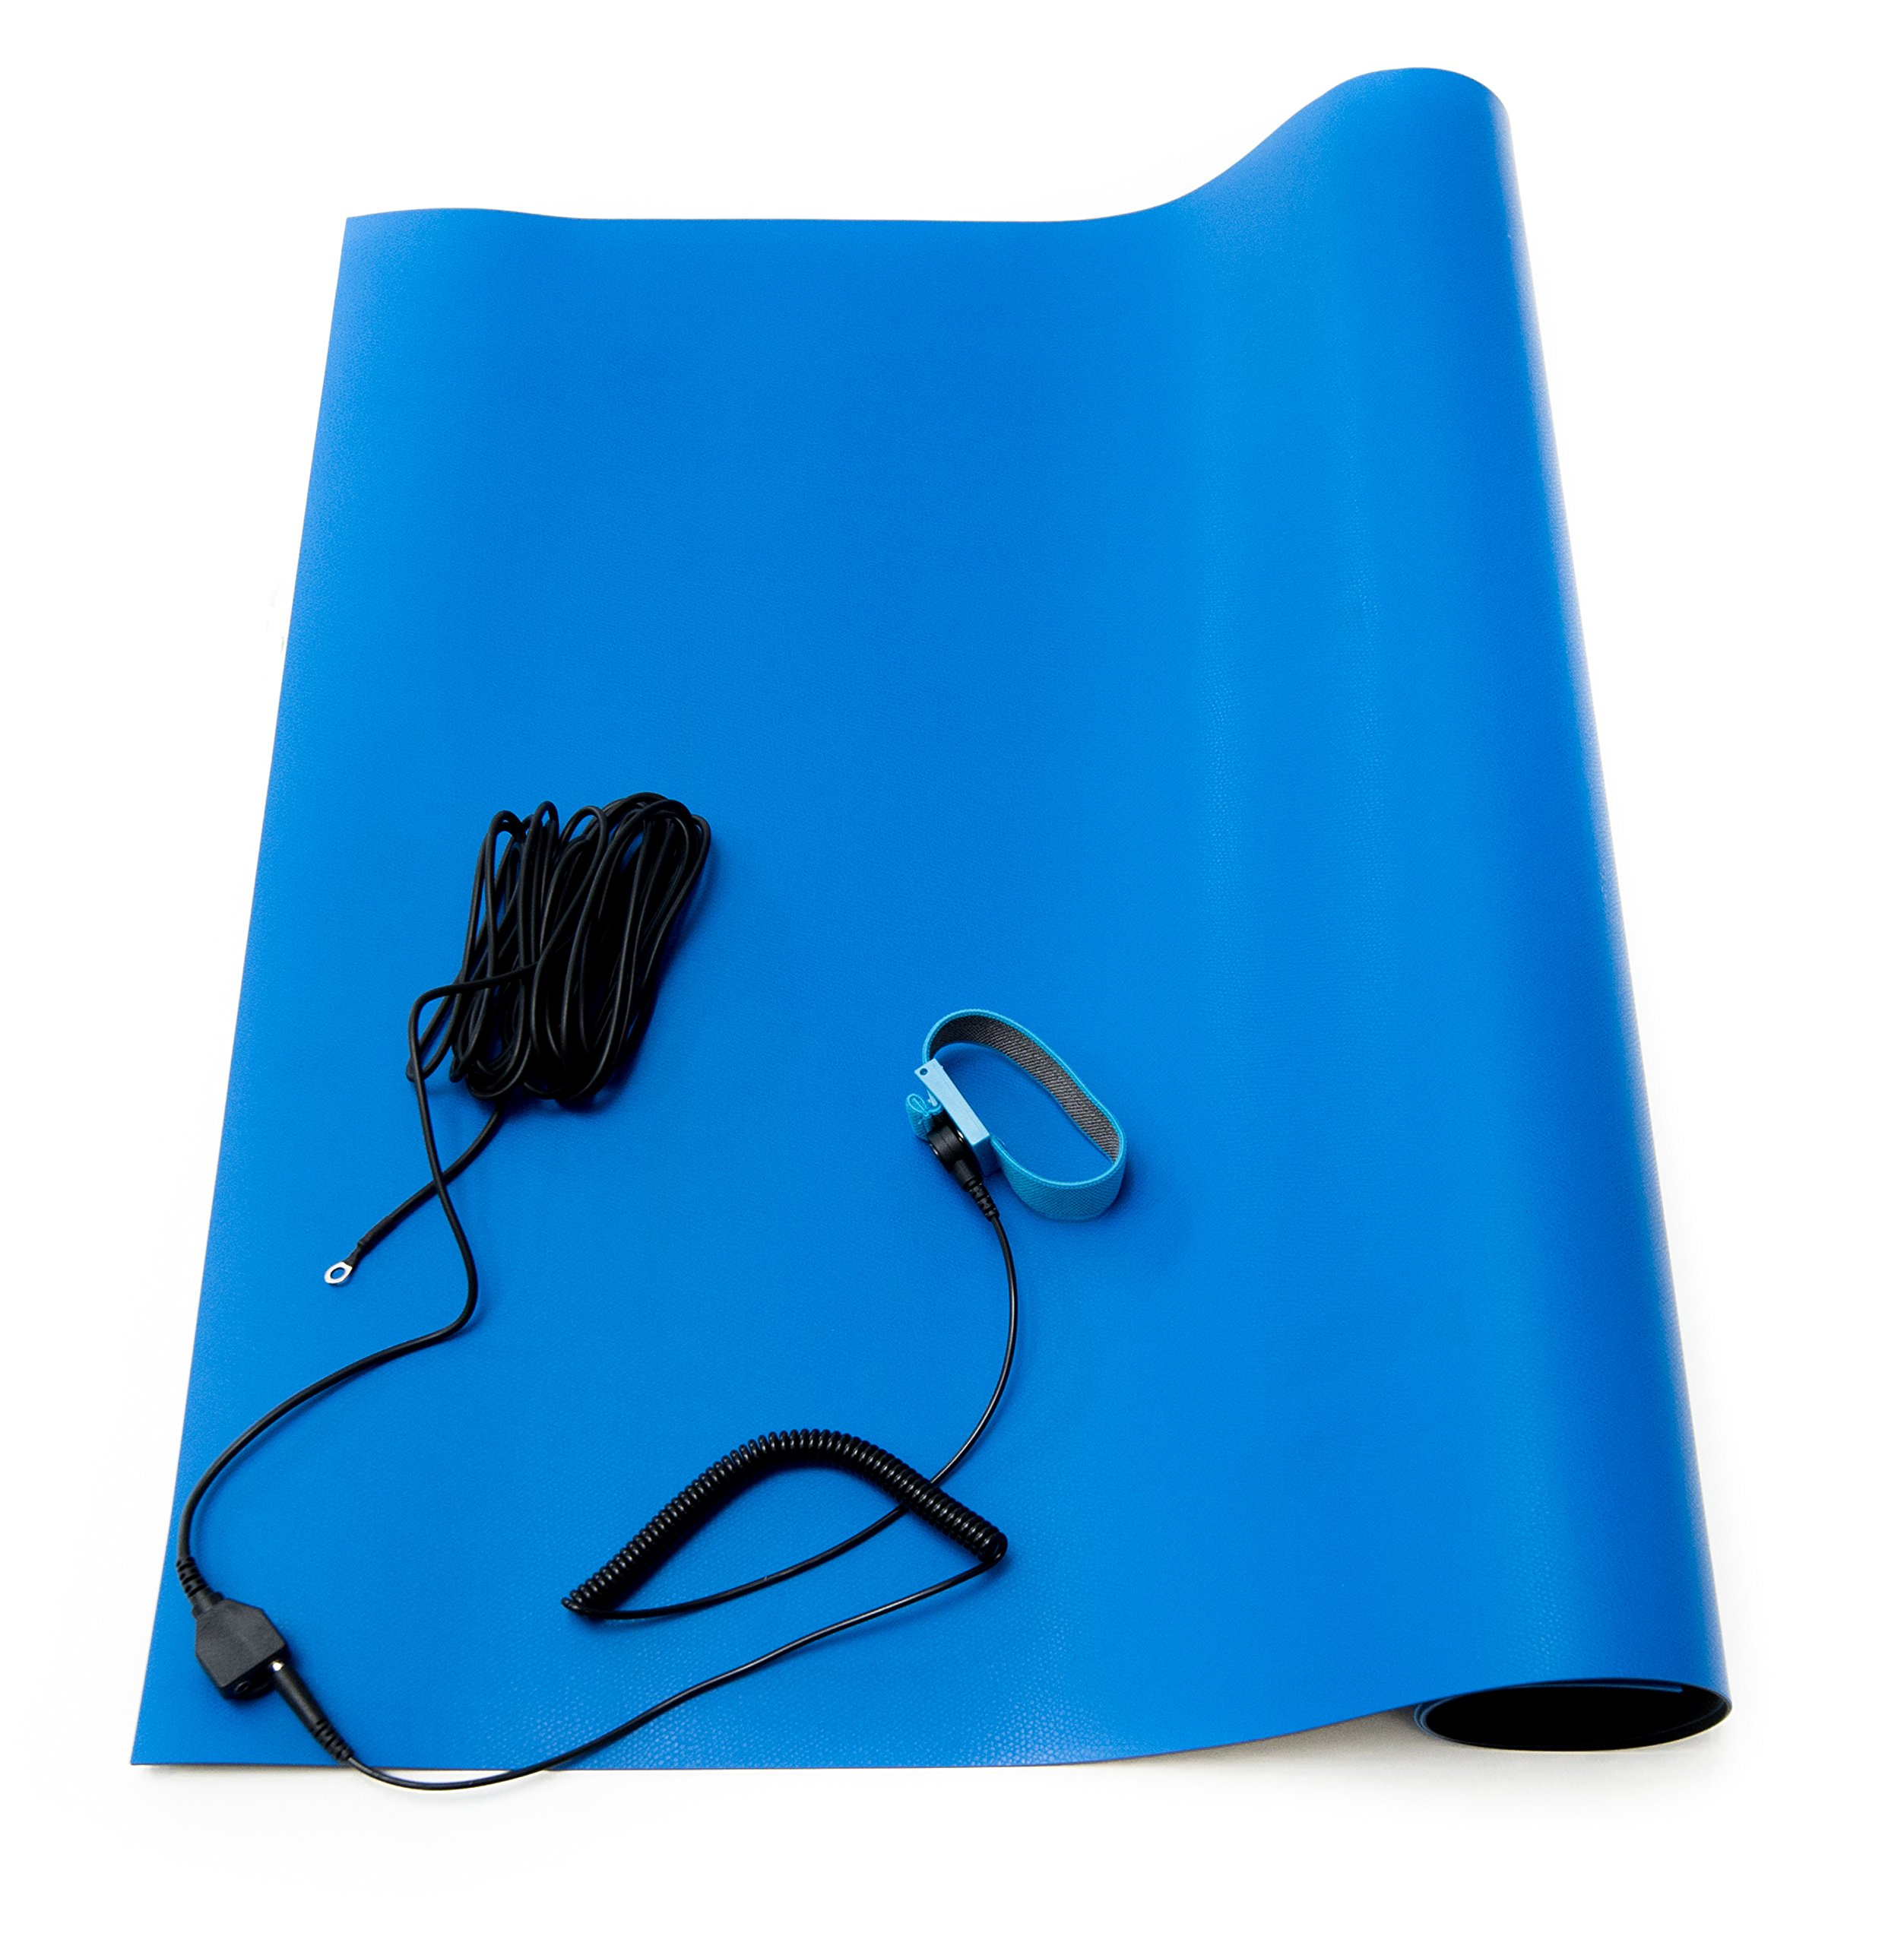 Bertech ESD High Temperature Rubber Mat Kit with a Wrist Strap and Grounding Cord, 2' Wide x 3' Long x 0.06'' Thick, Blue, Made in USA